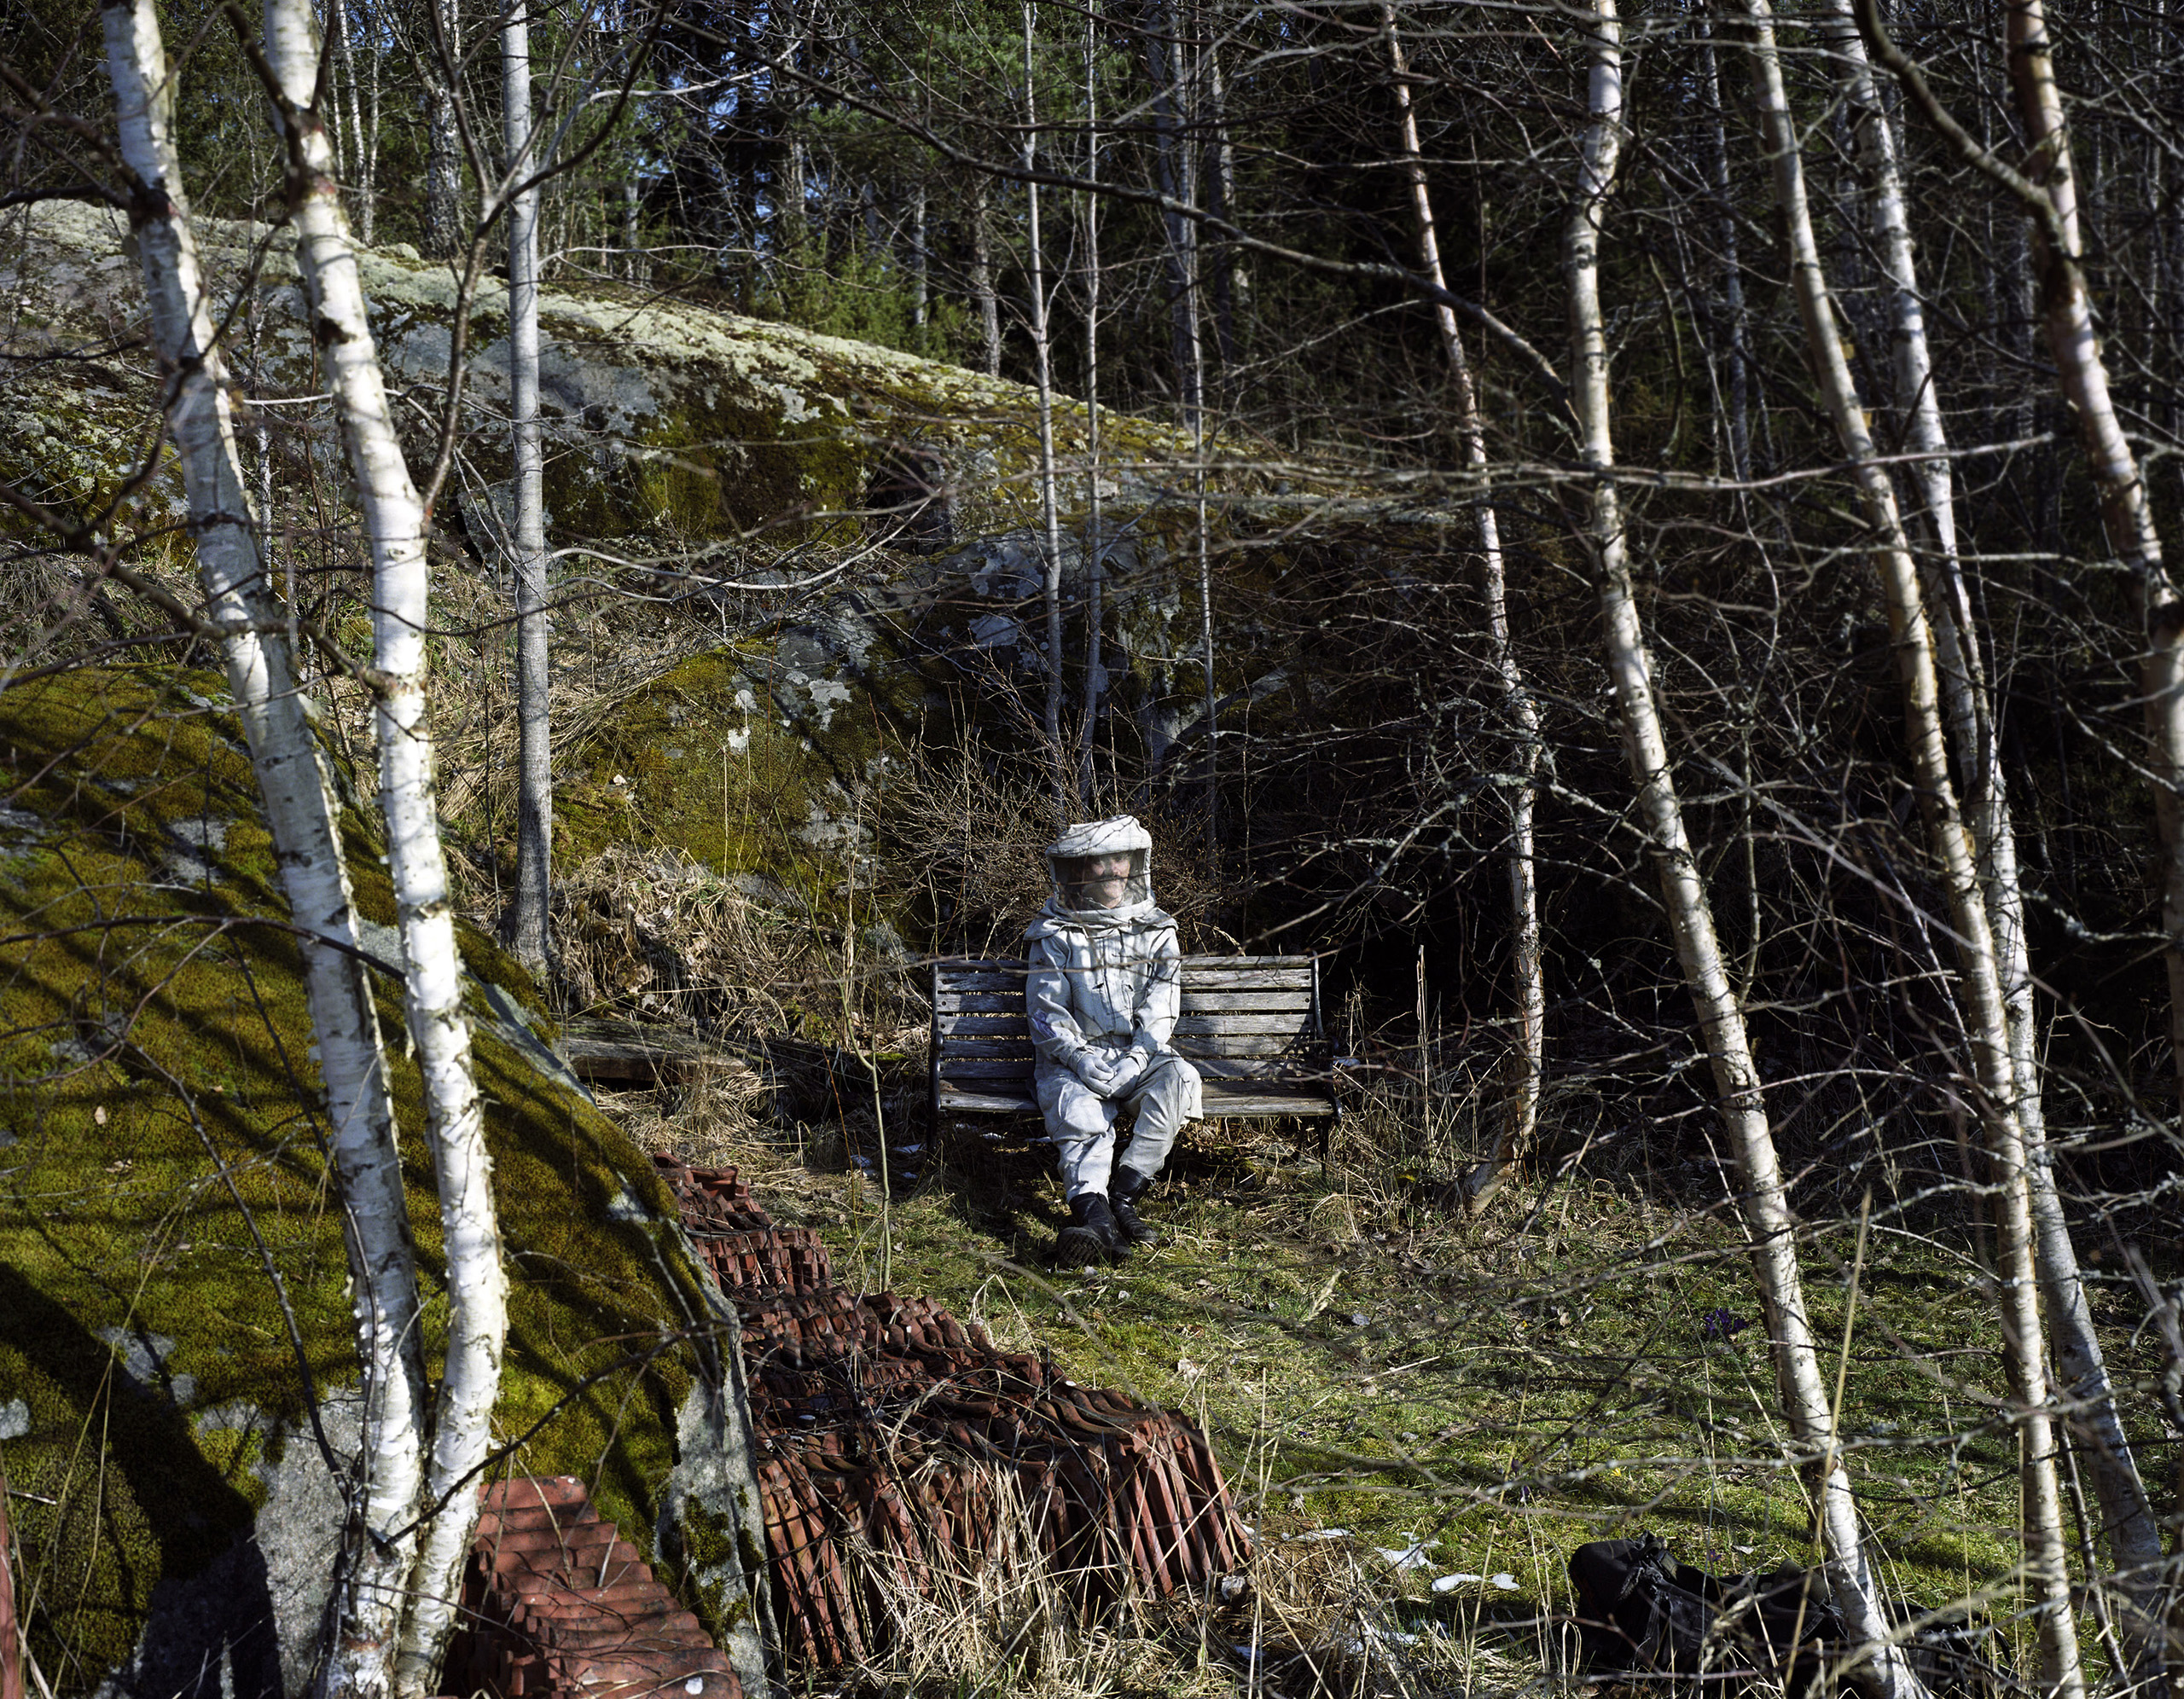 Sweden, 2008. Per Segerback, one of the figures of the  electrosensitives  struggle, used to work for the phone company Ericsson. He doesn't move around anymore without his waves protection suit.